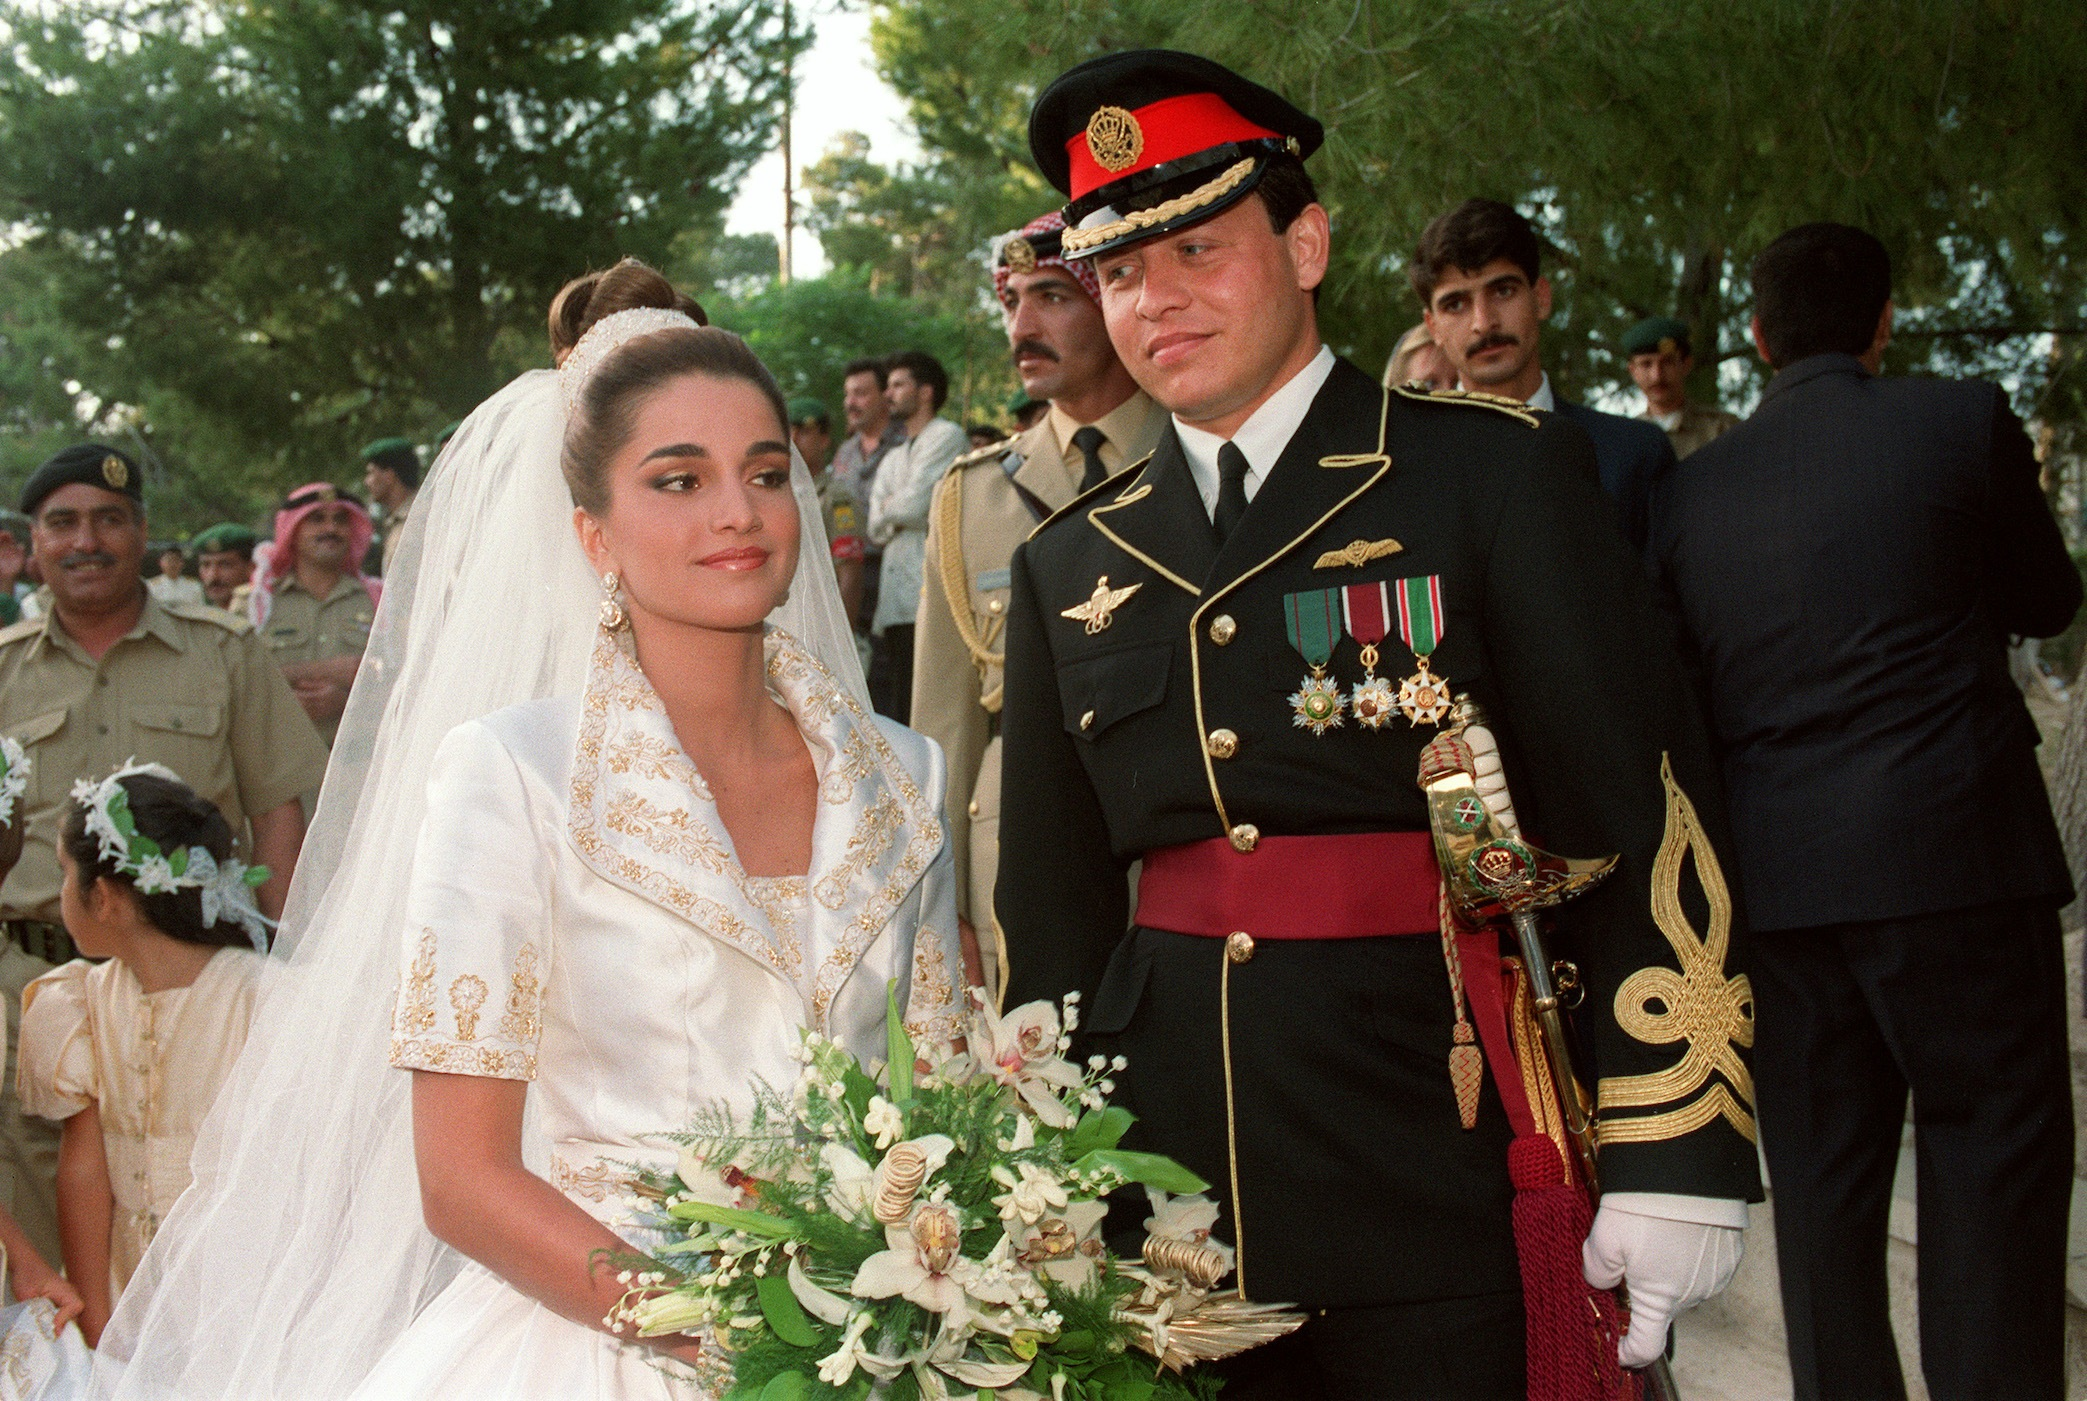 King Abdullah and Rainia wedding